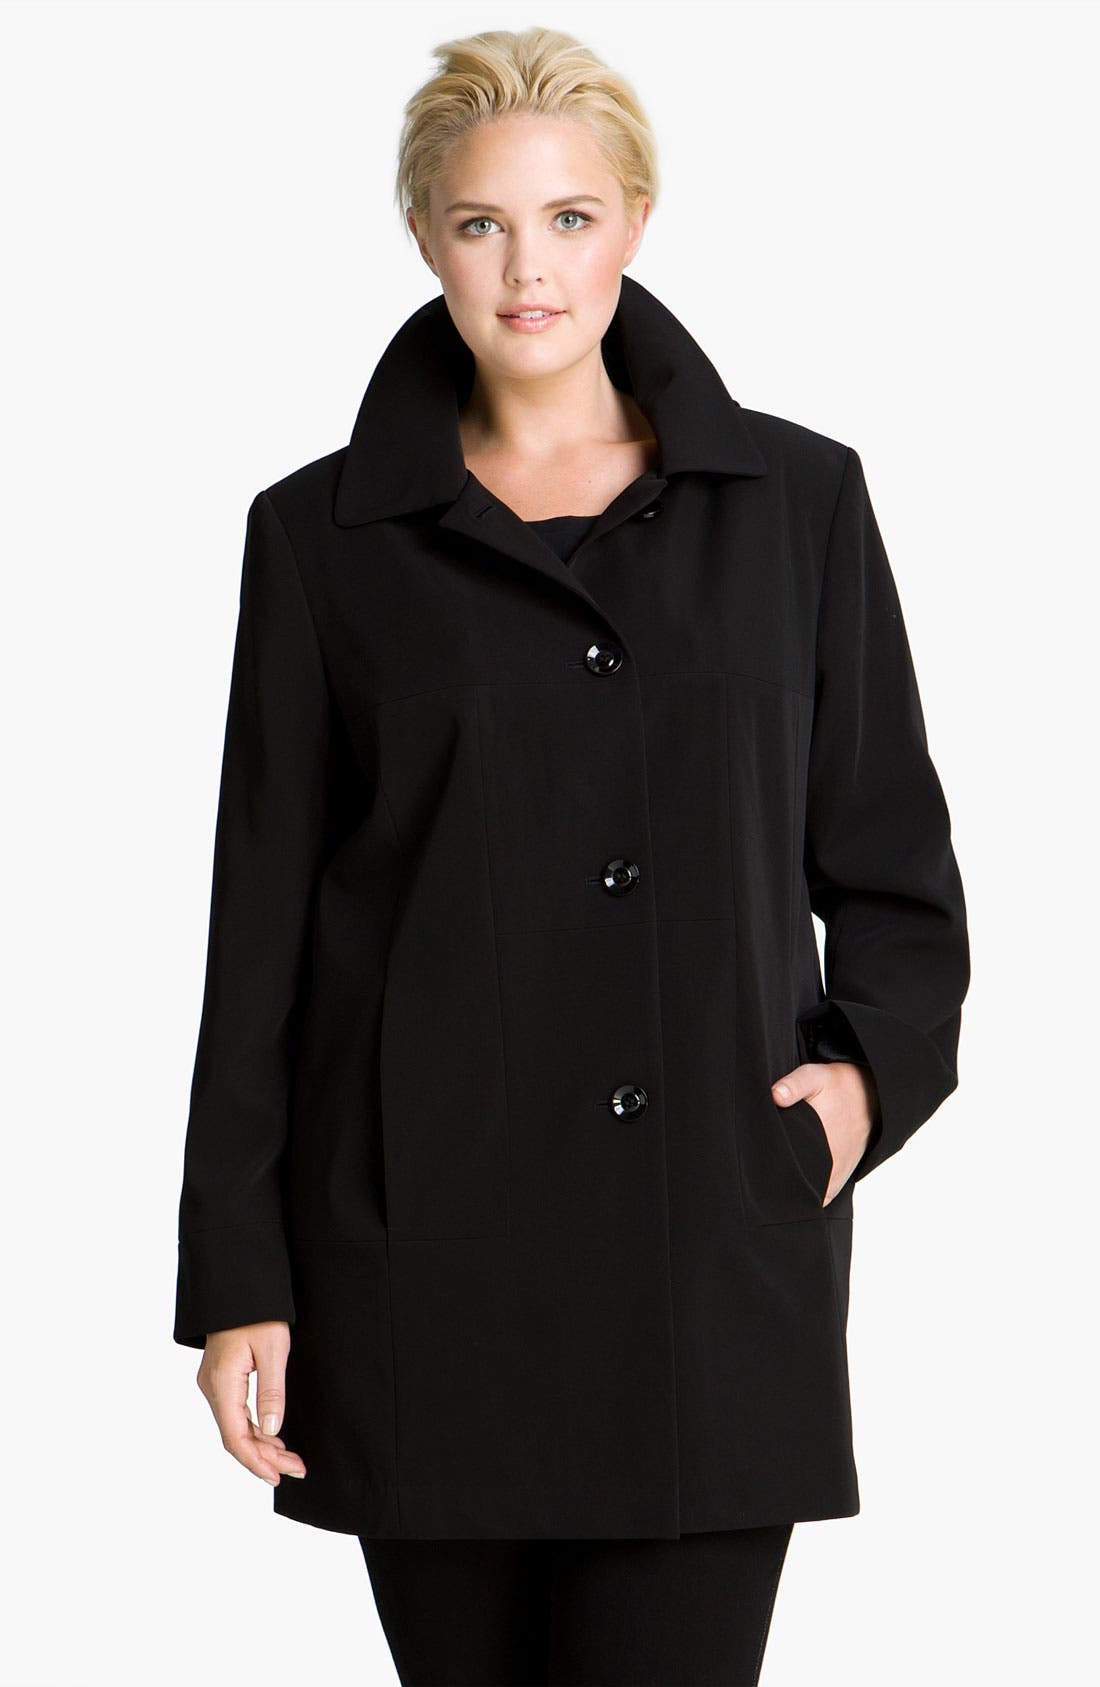 Alternate Image 1 Selected - Gallery Club Collar Coat with Detachable Liner (Plus)